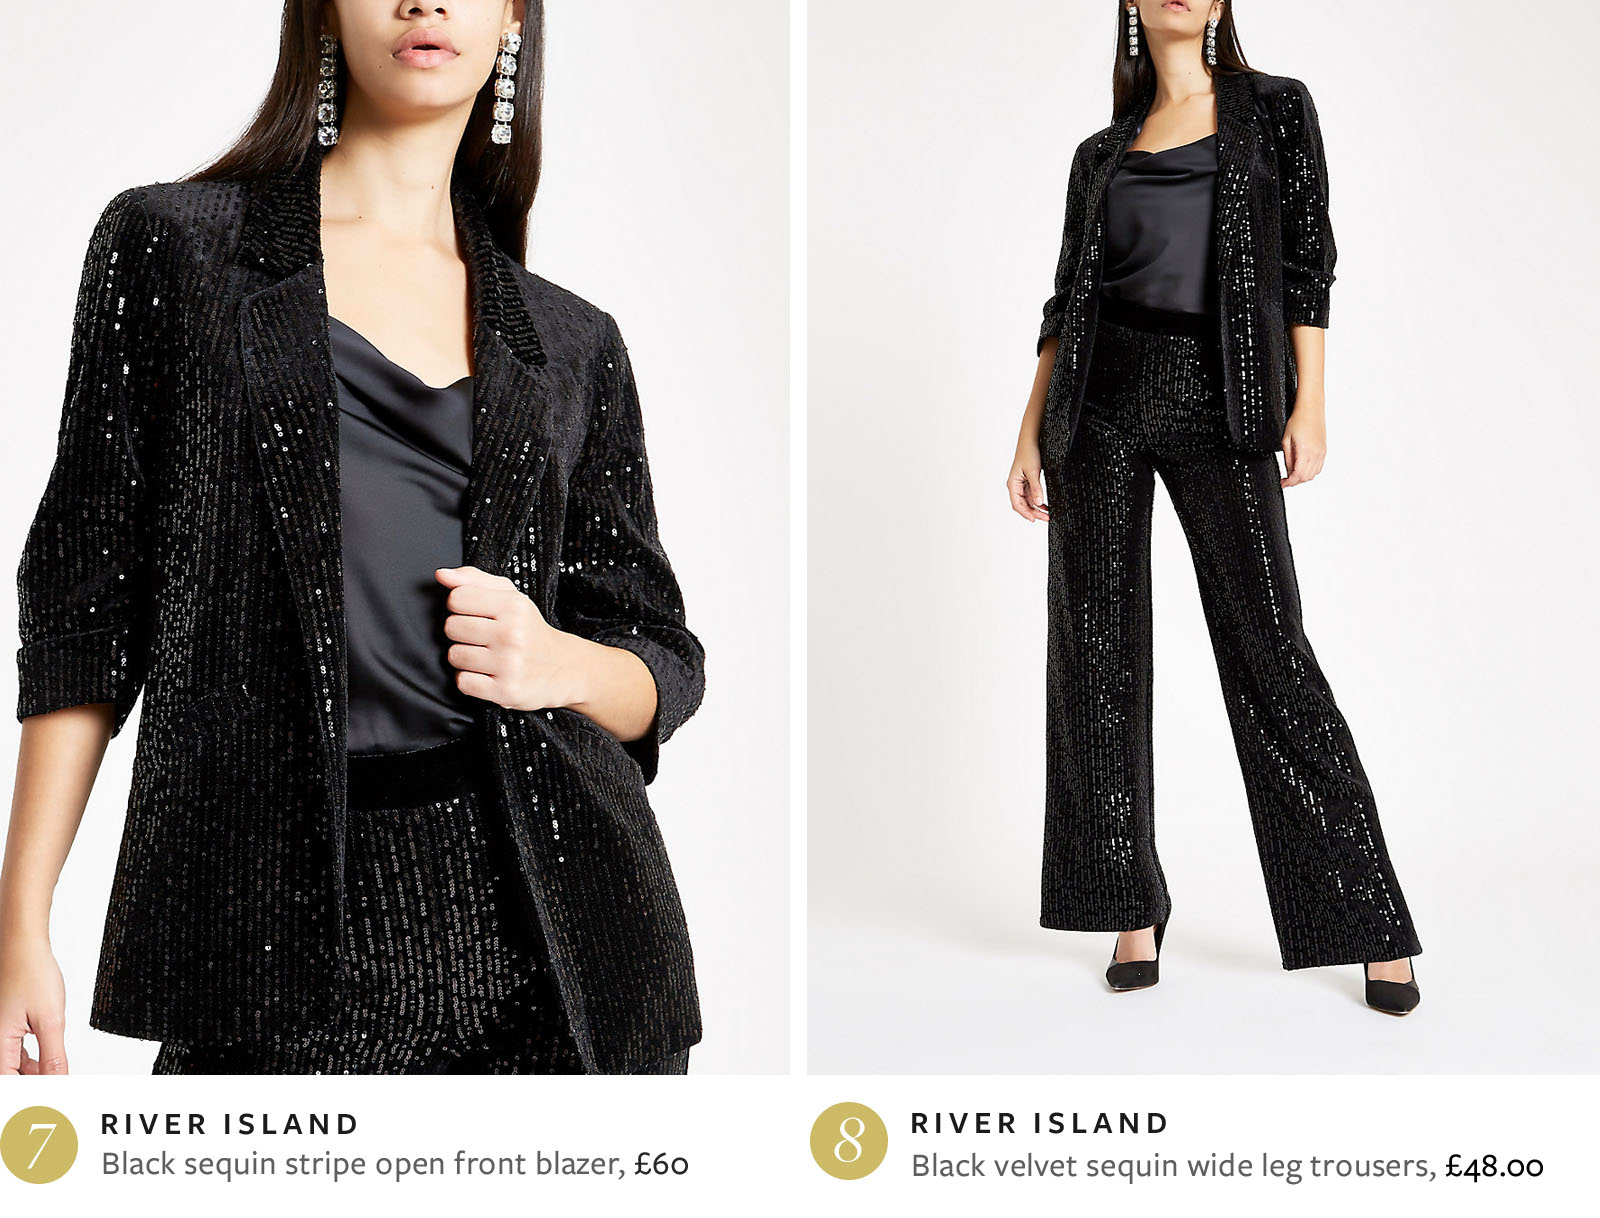 Black sequin blazer and trousers